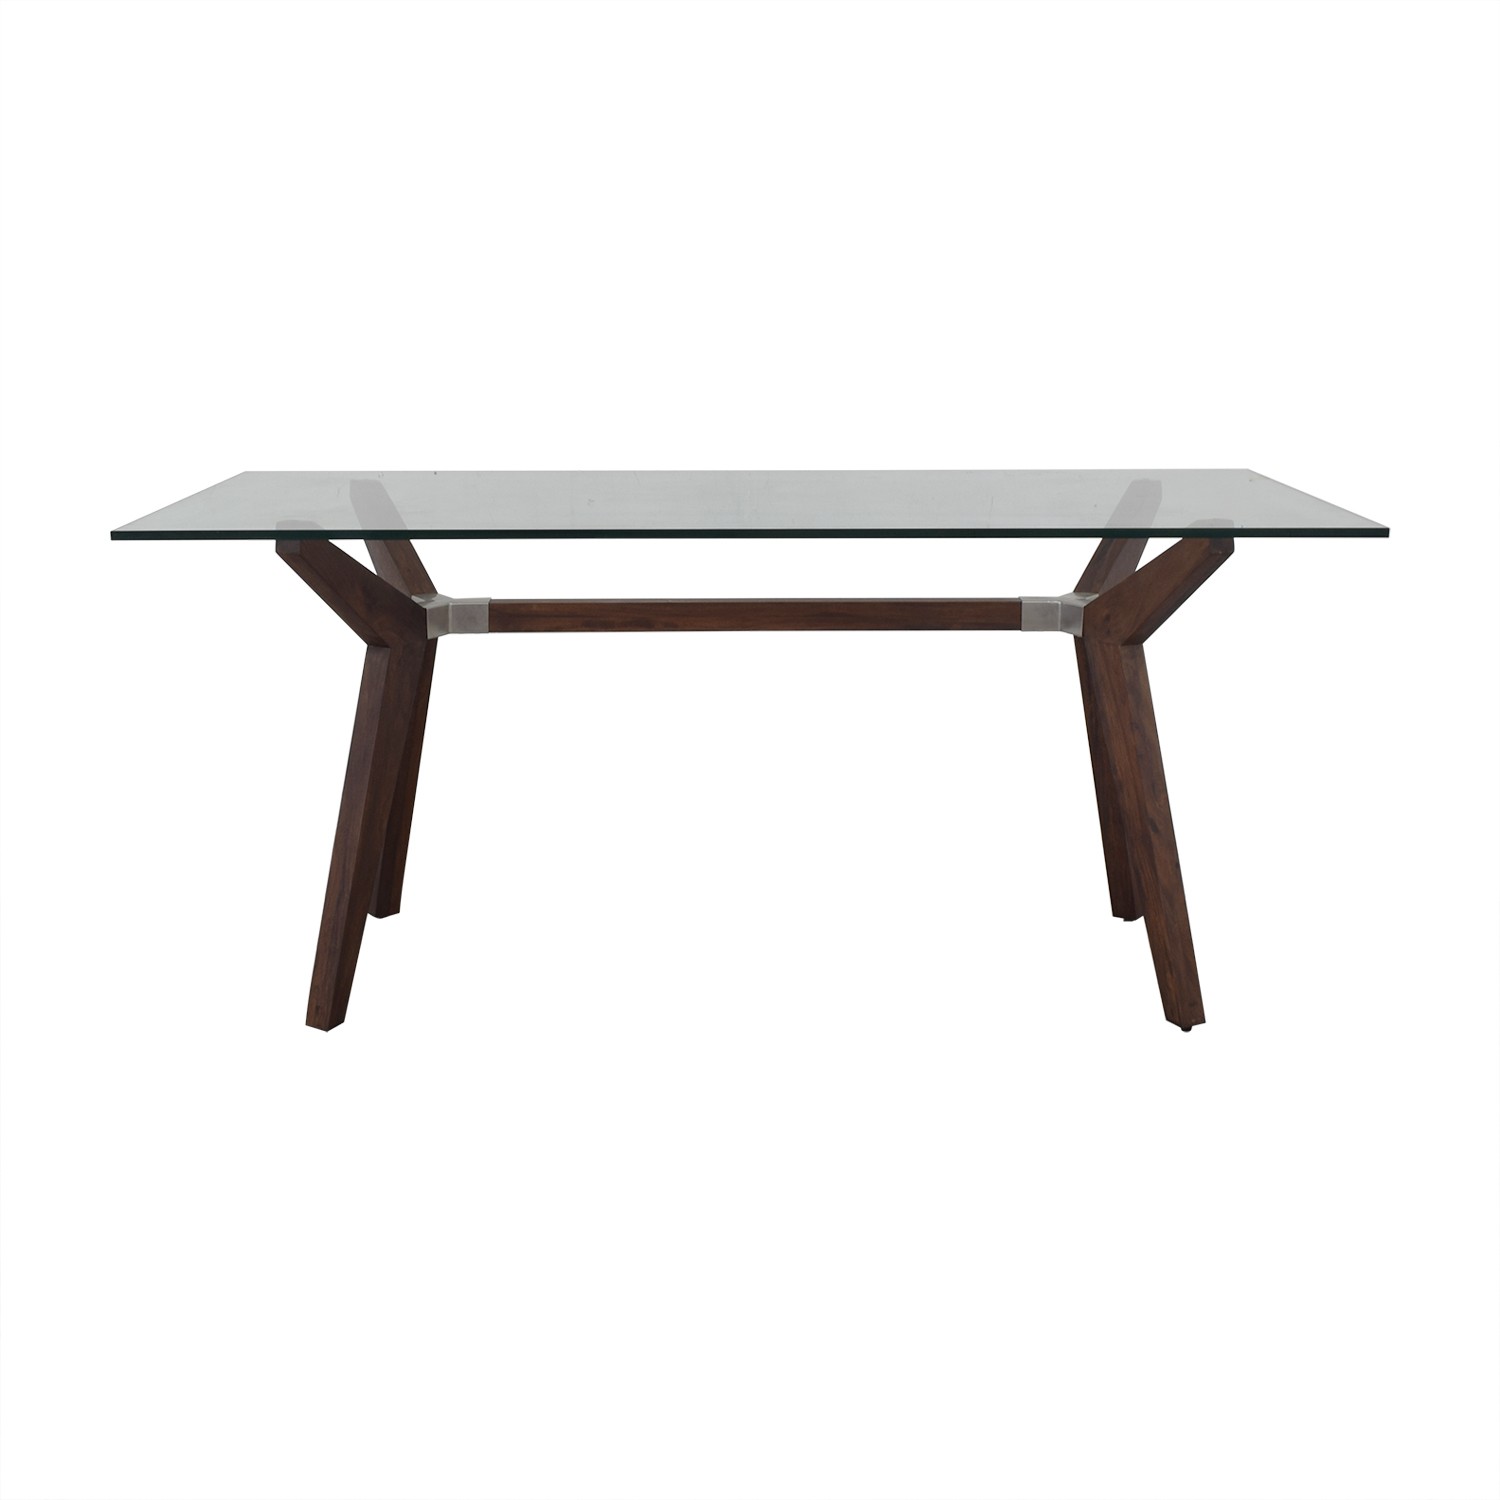 Crate & Barrel Strut Glass Top Table / Tables